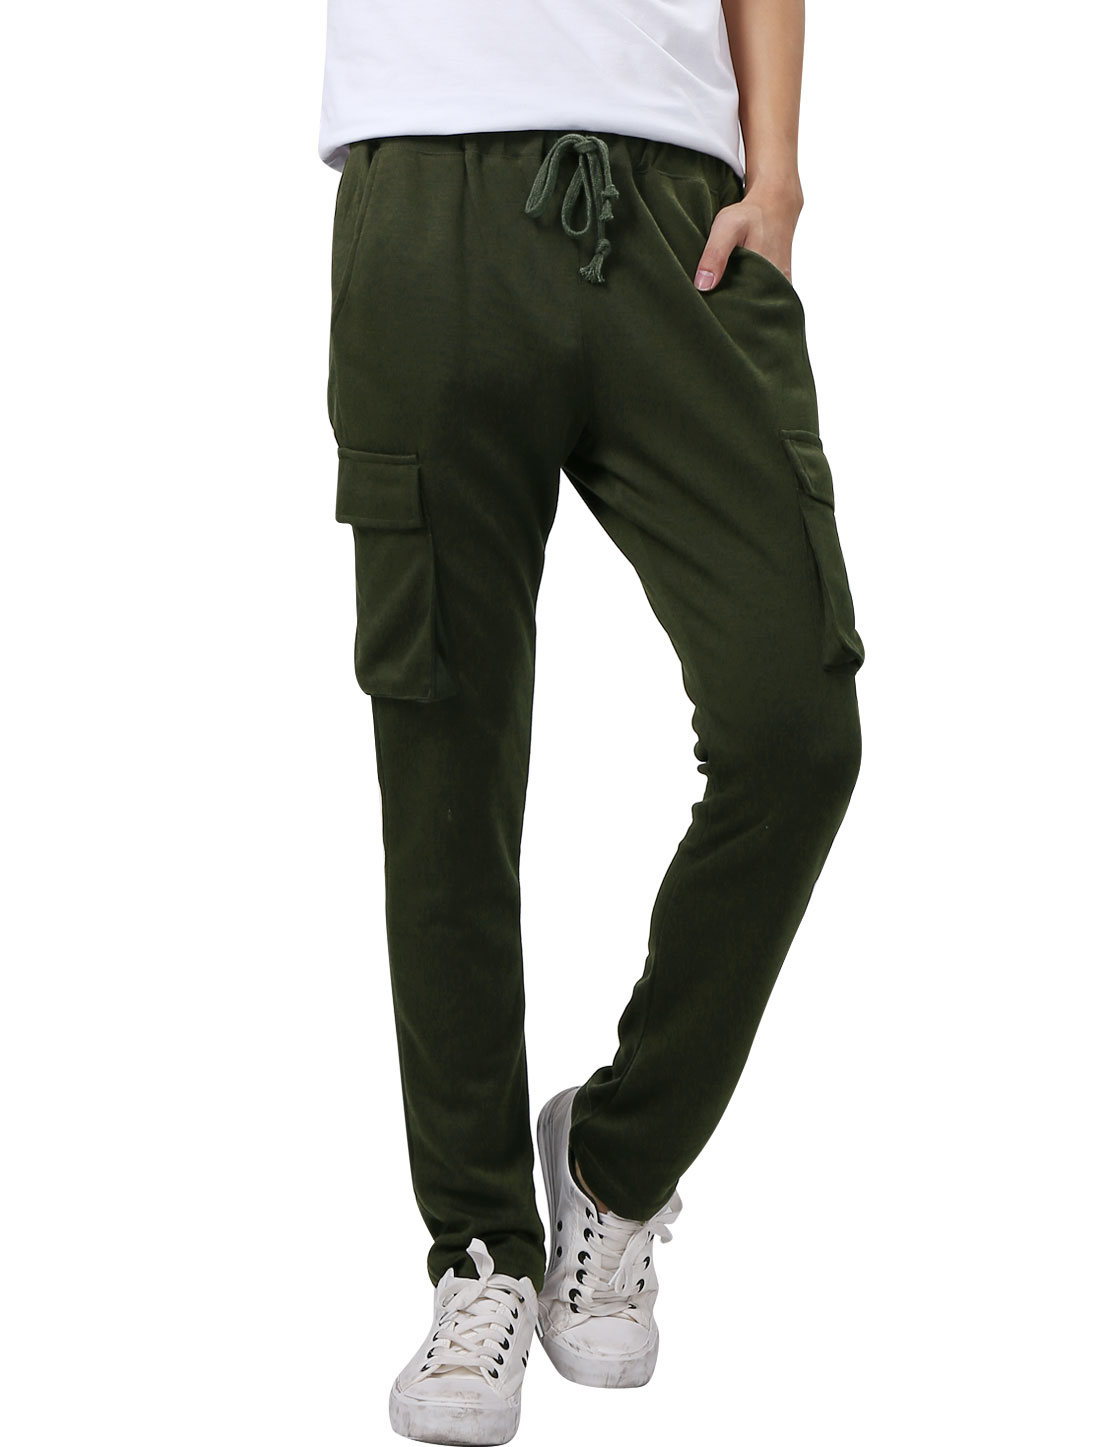 Men Elastic Waist Double Side Pockets Casual Trousers Army Green W28